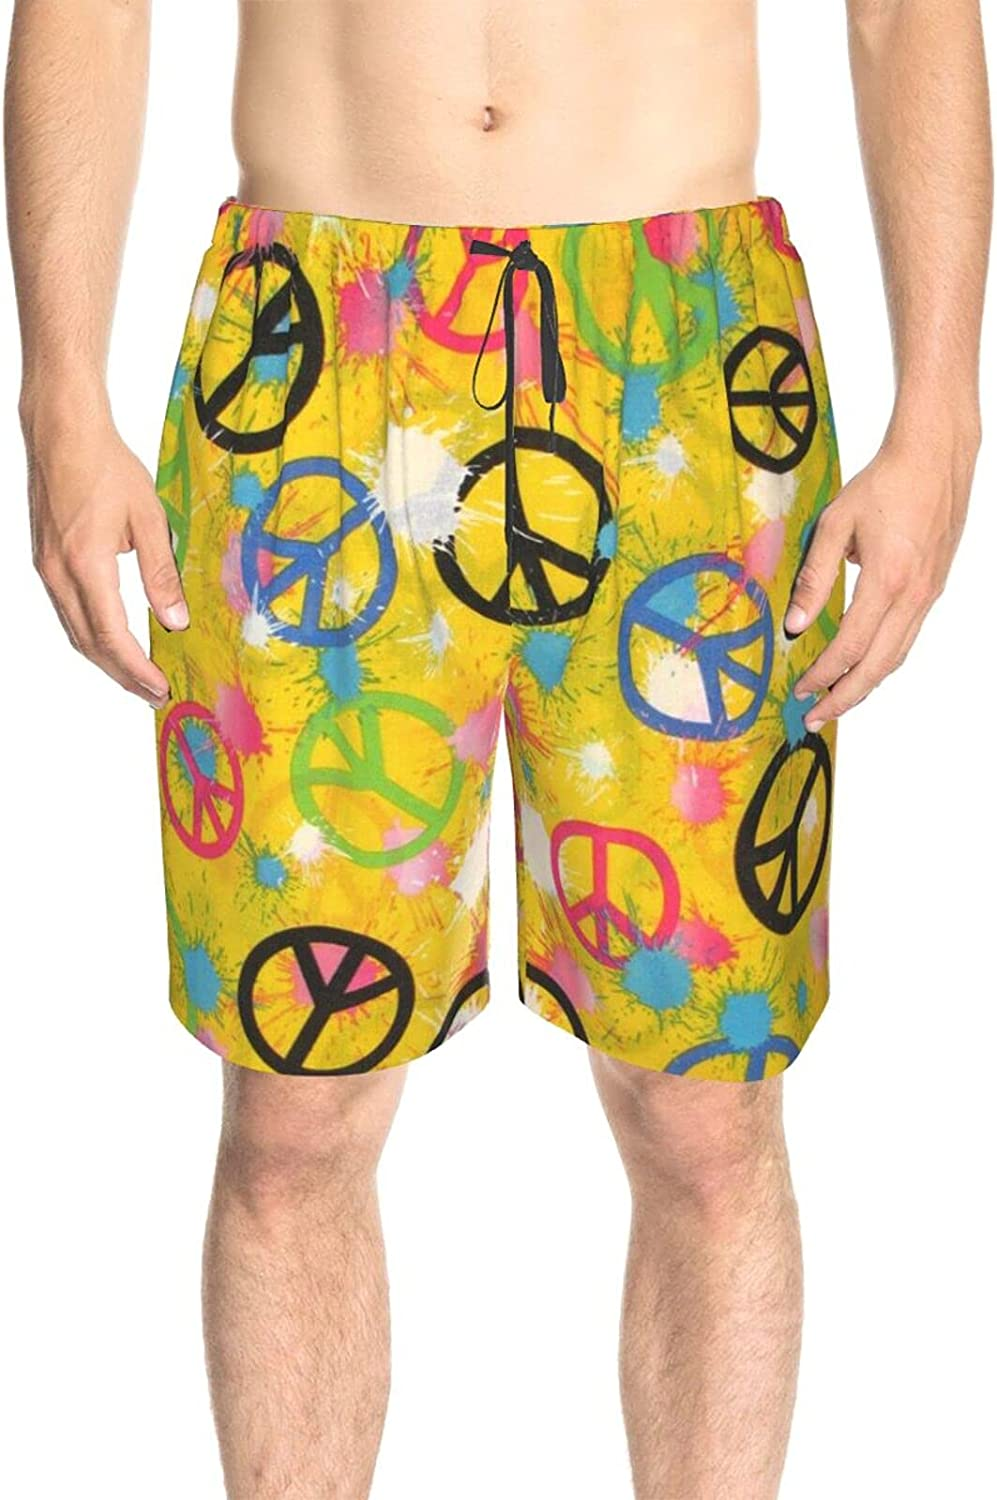 JINJUELS Mens Bathing Suits Splashes Peace Signs Bathing Suit Boardshorts Quick Dry Comfy Swimwear Beach Shorts